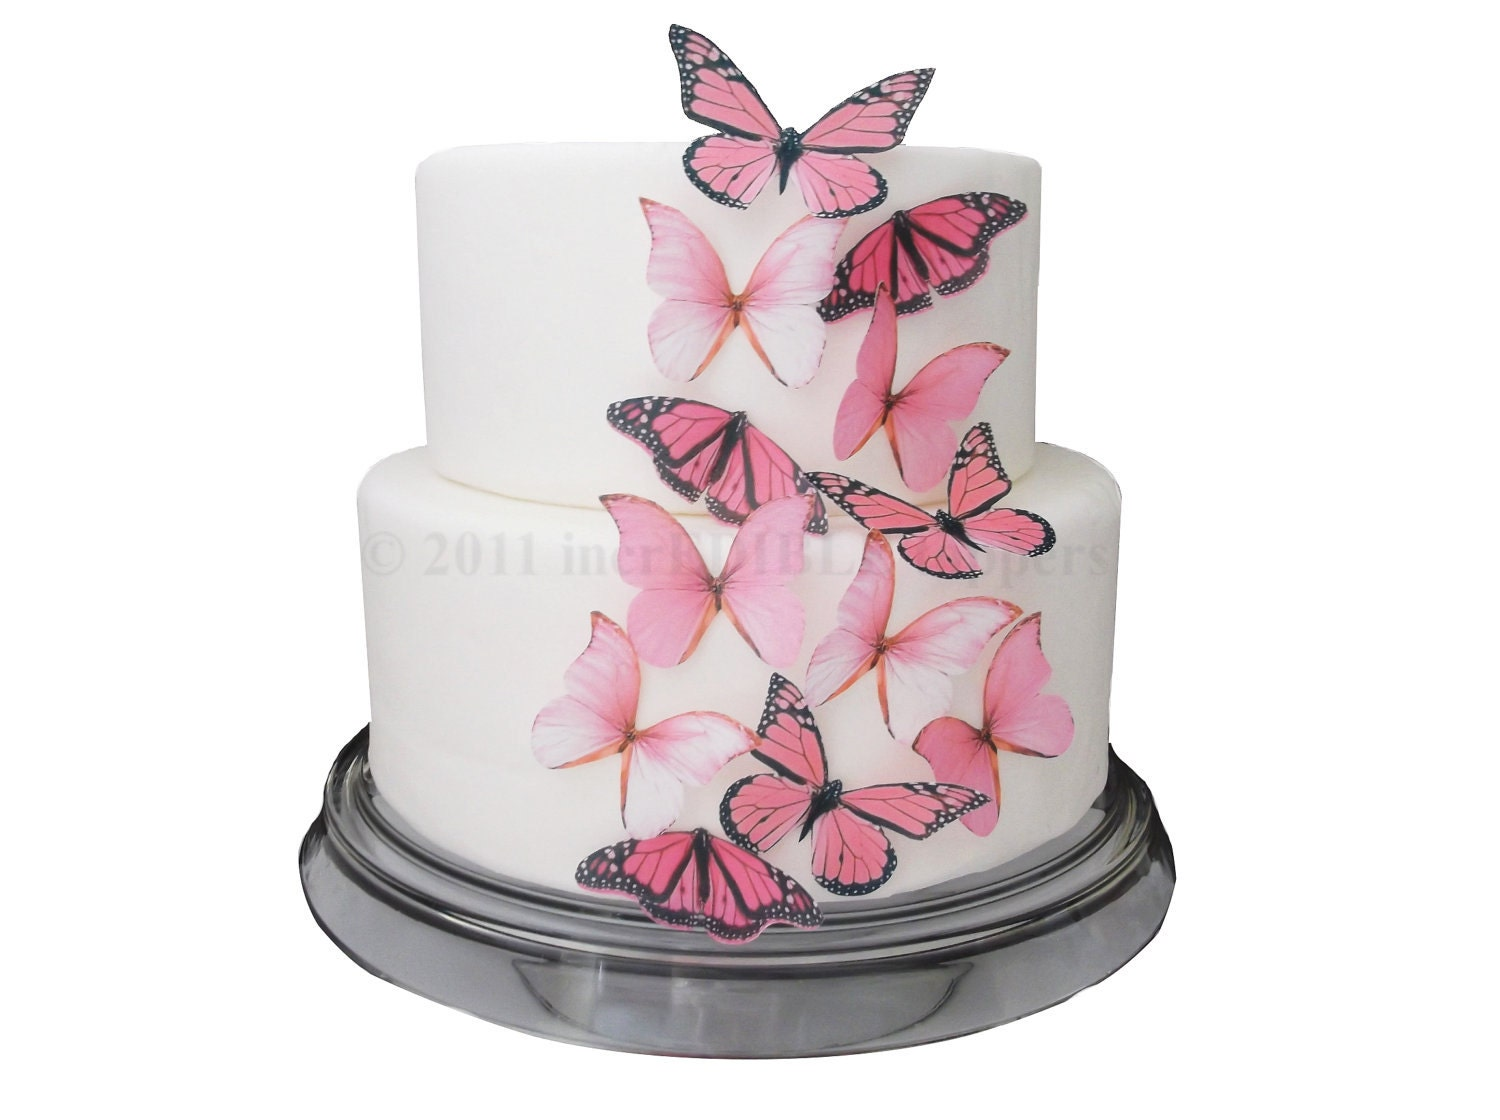 CAKE DECORATIONS Edible Butterflies 12 Large by incrEDIBLEtoppers